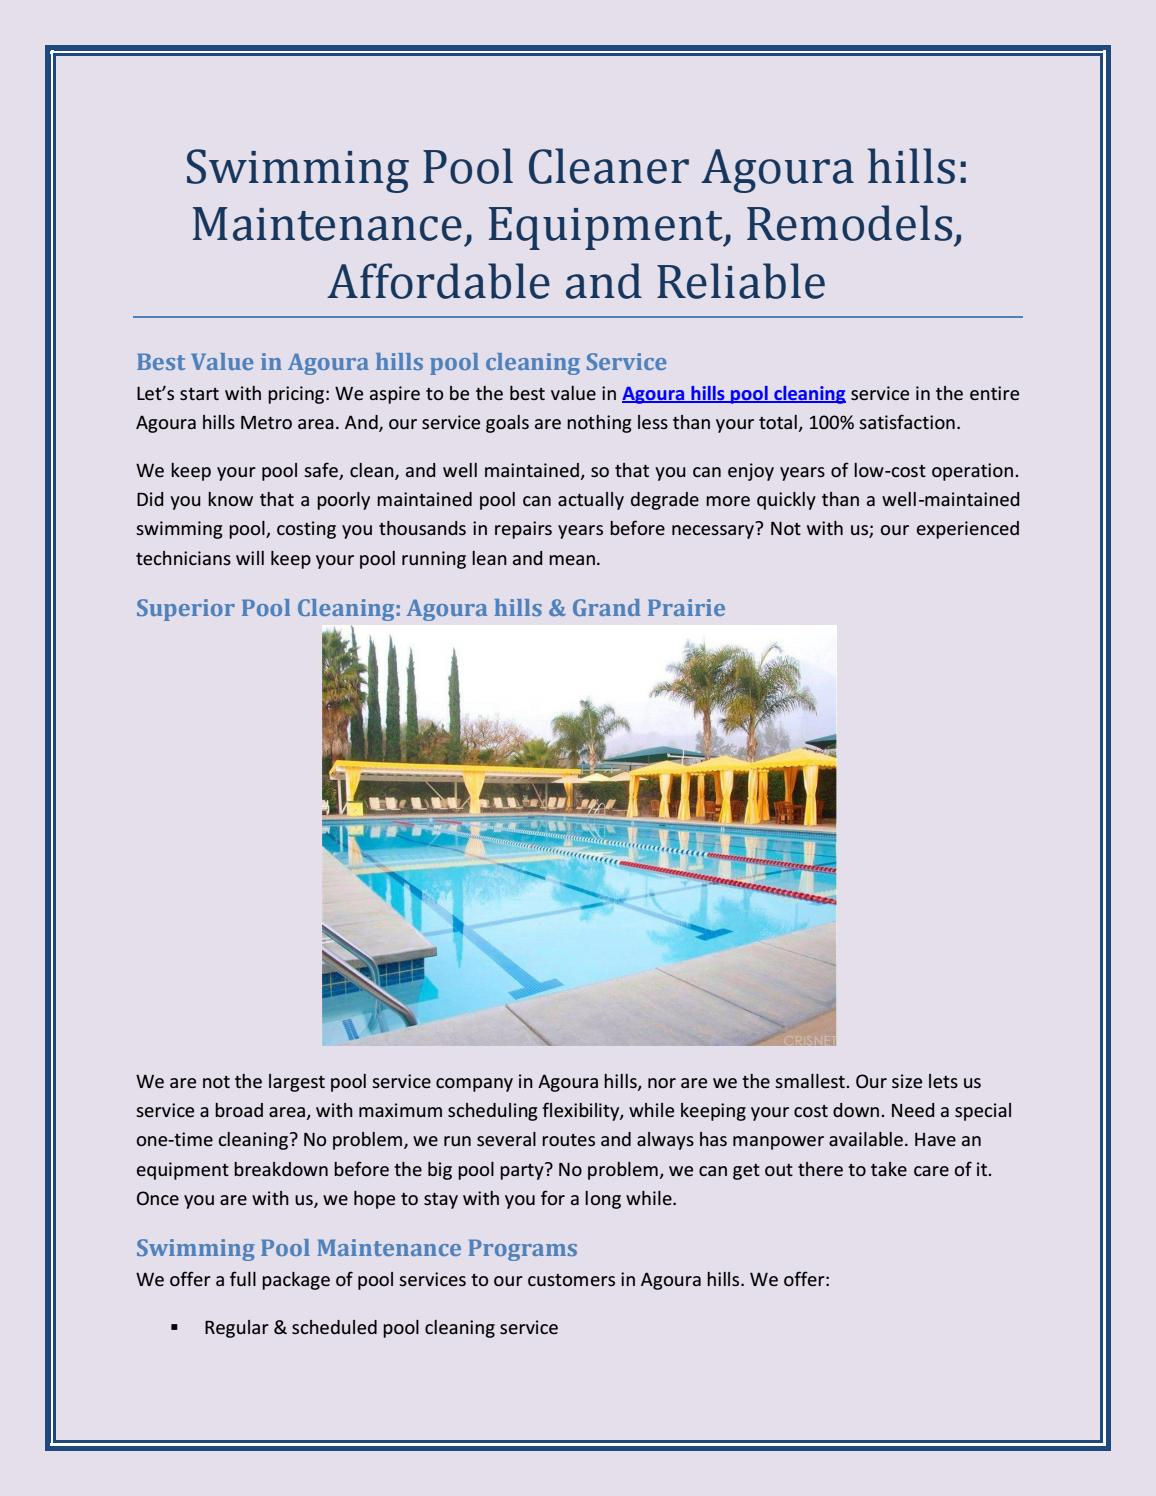 Swimming Pool Cleaner Agoura Hills Maintenance Equipment Remodels Affordable And Reliable By Stanton Pools Issuu